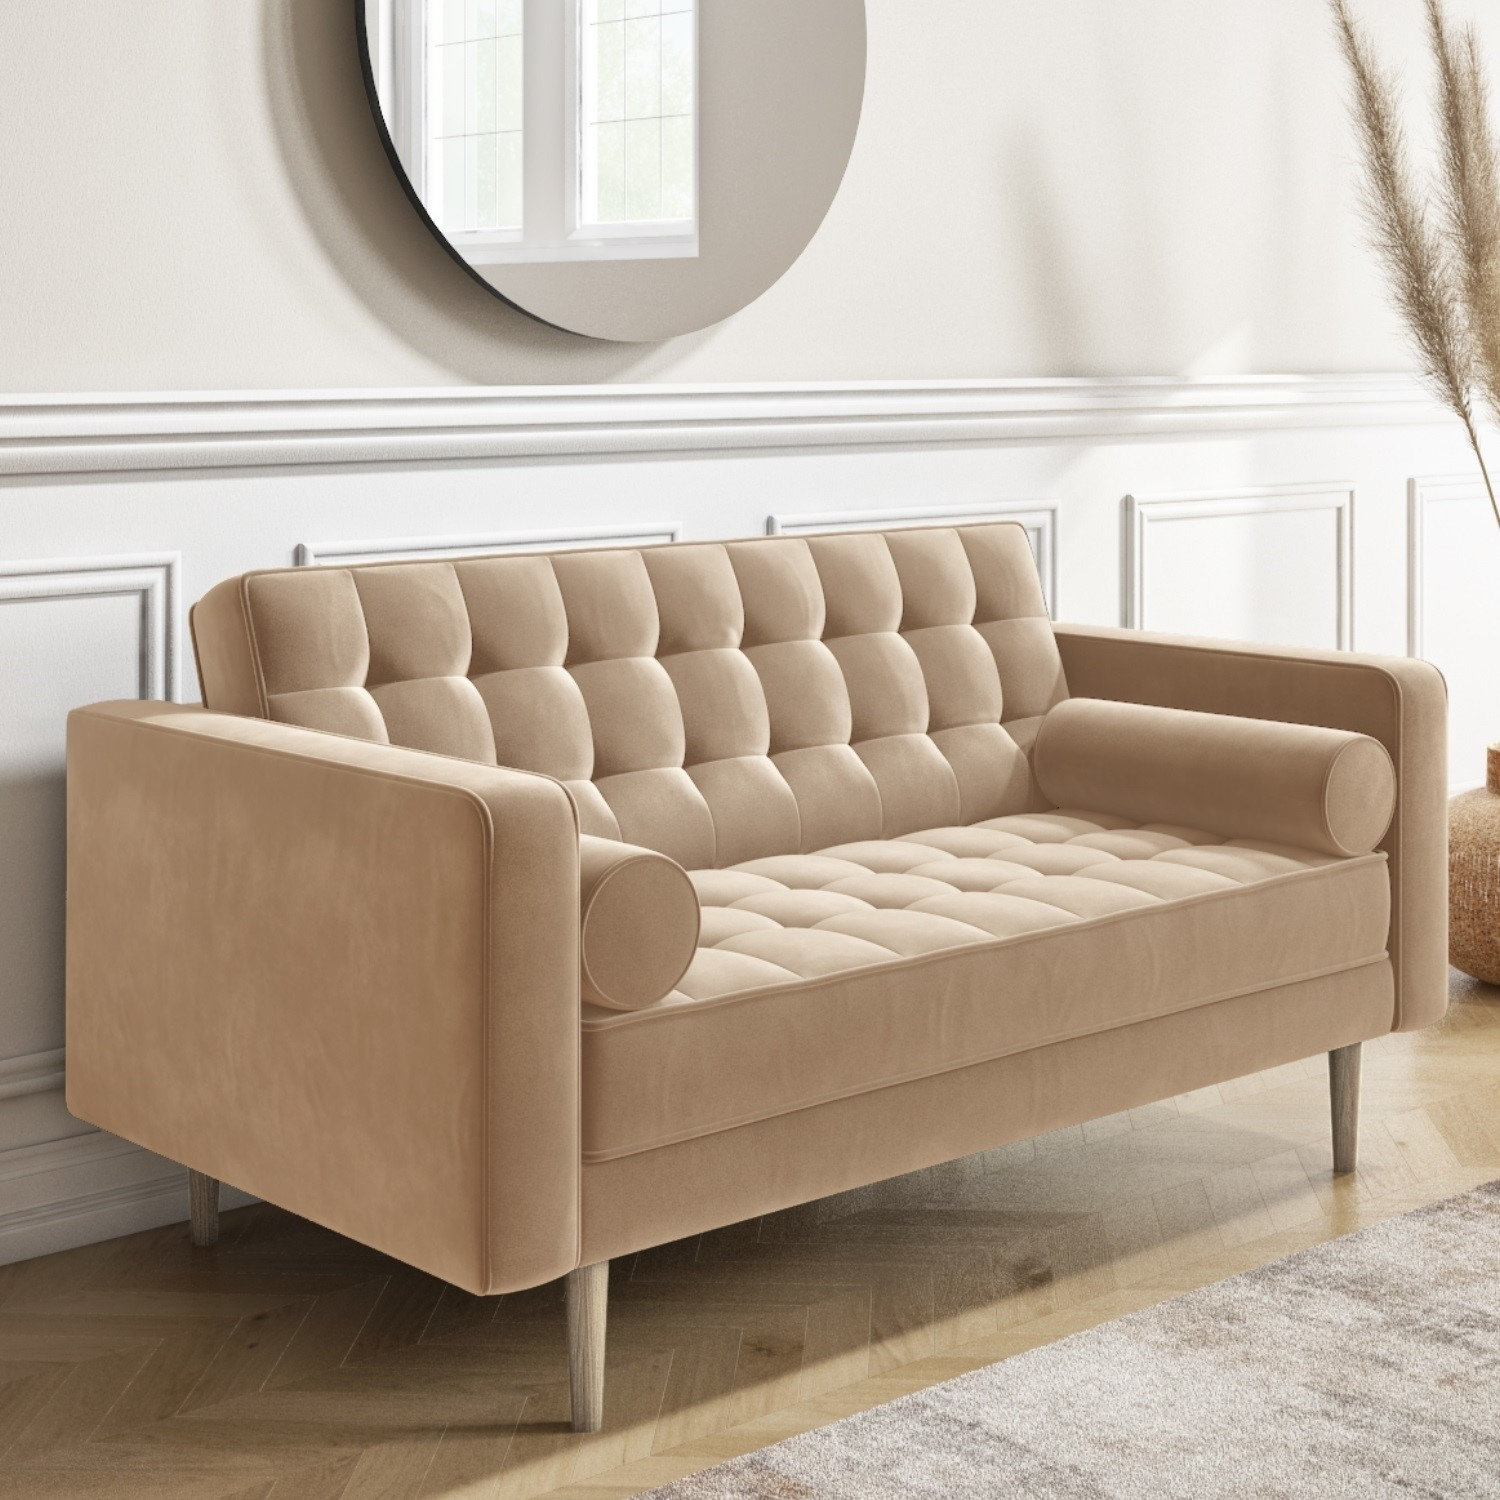 2 Seater Sofa In Beige Velvet With Buttoned Back Bolster Cushions Elba Furniture123